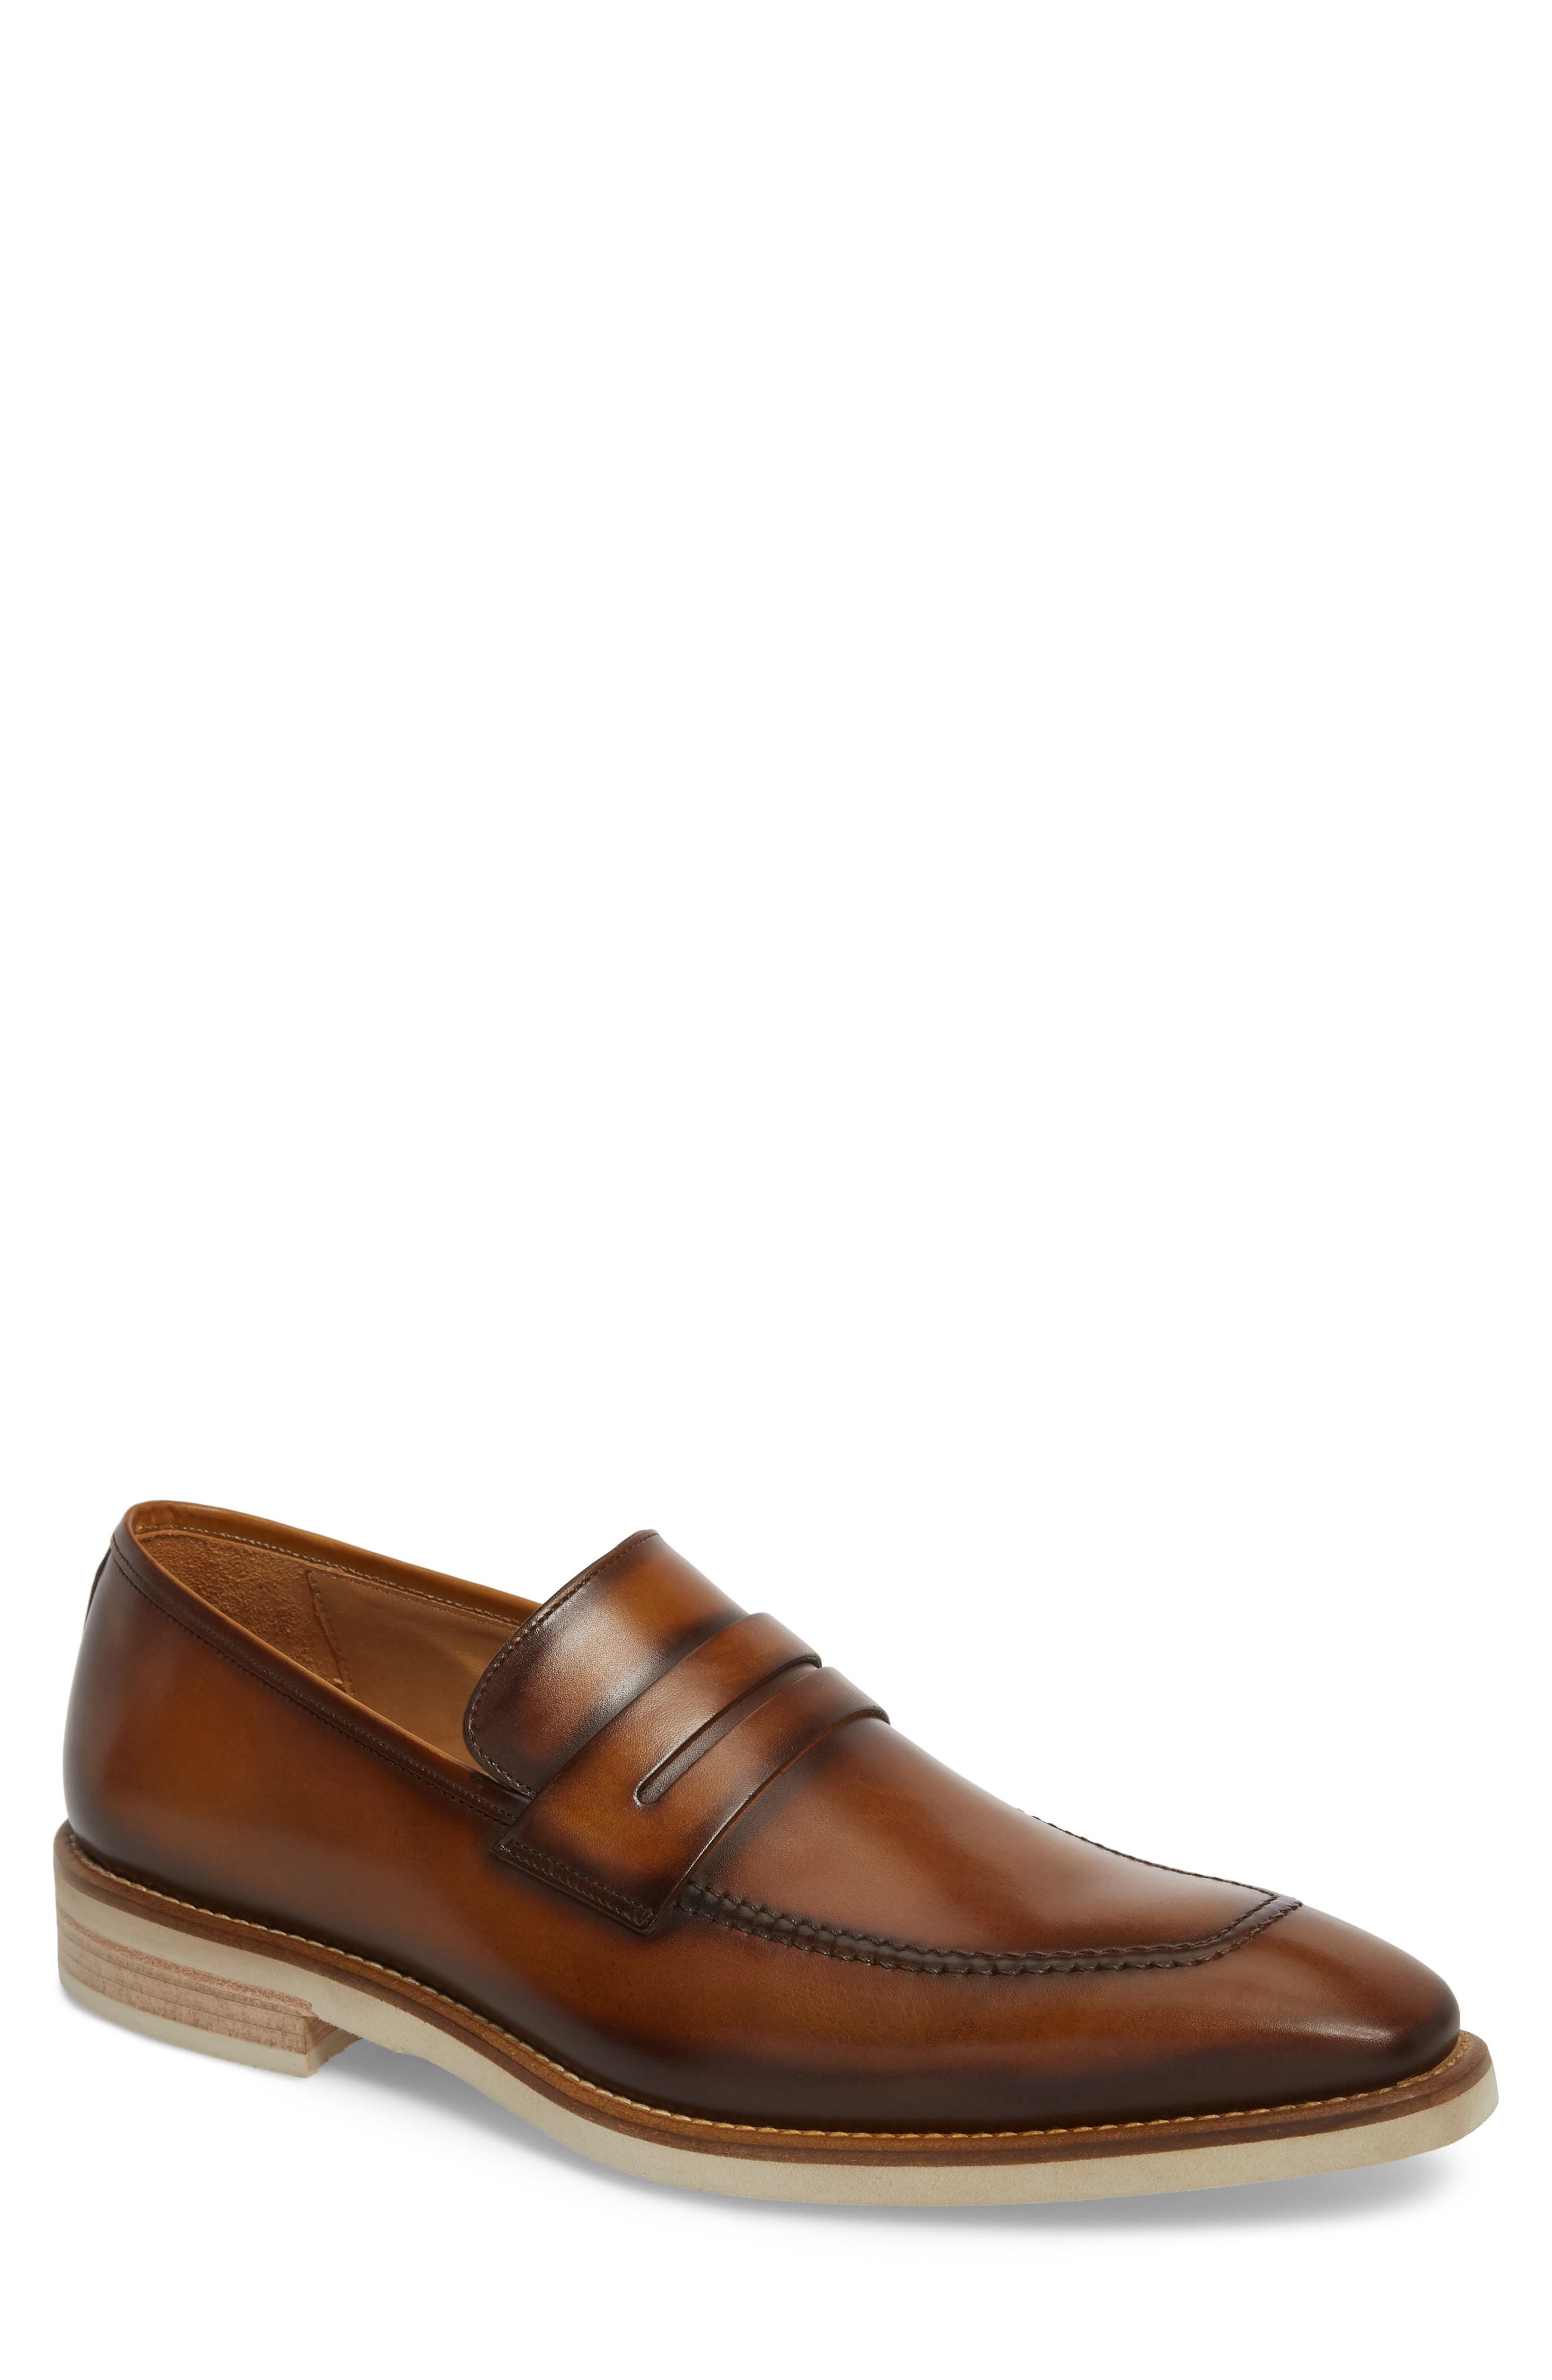 Castor Apron Toe Penny Loafer,                         Main,                         color, Honey Leather